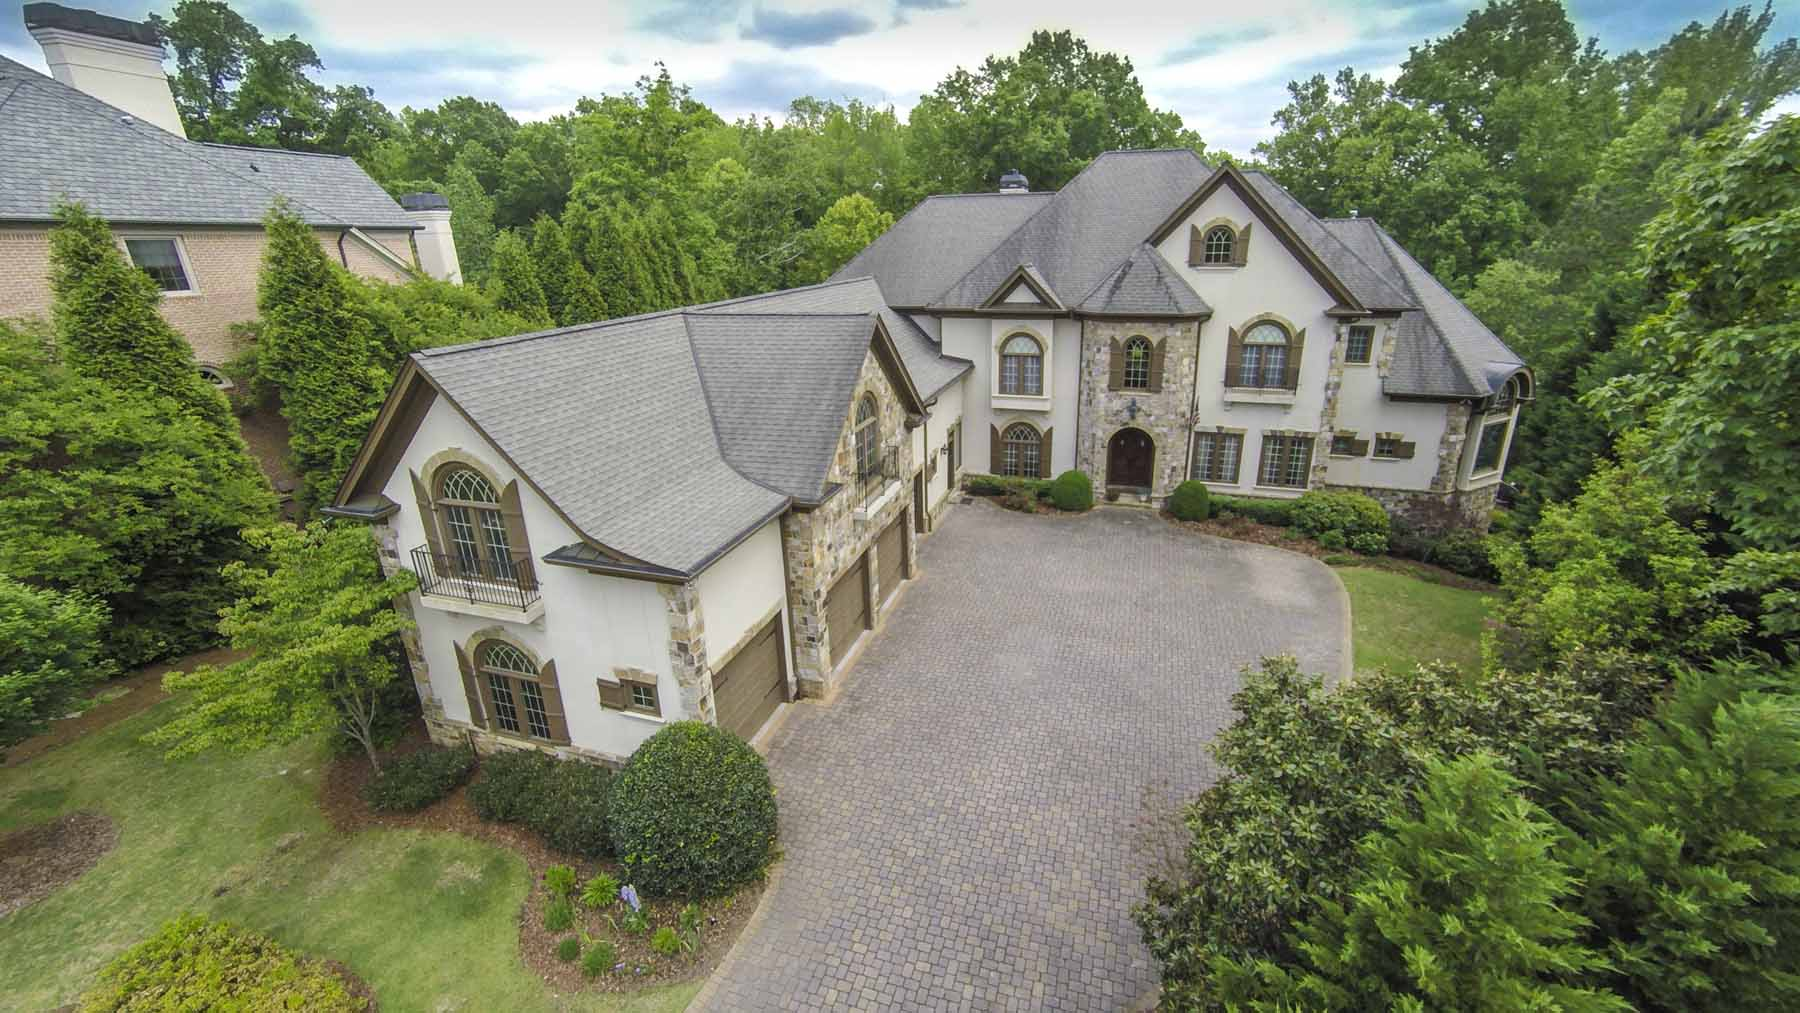 Maison unifamiliale pour l Vente à Stunning Home Meets Modern Updates on the Sparkling Chatahoochee River 500 Covington Cove Alpharetta, Georgia, 30022 États-Unis